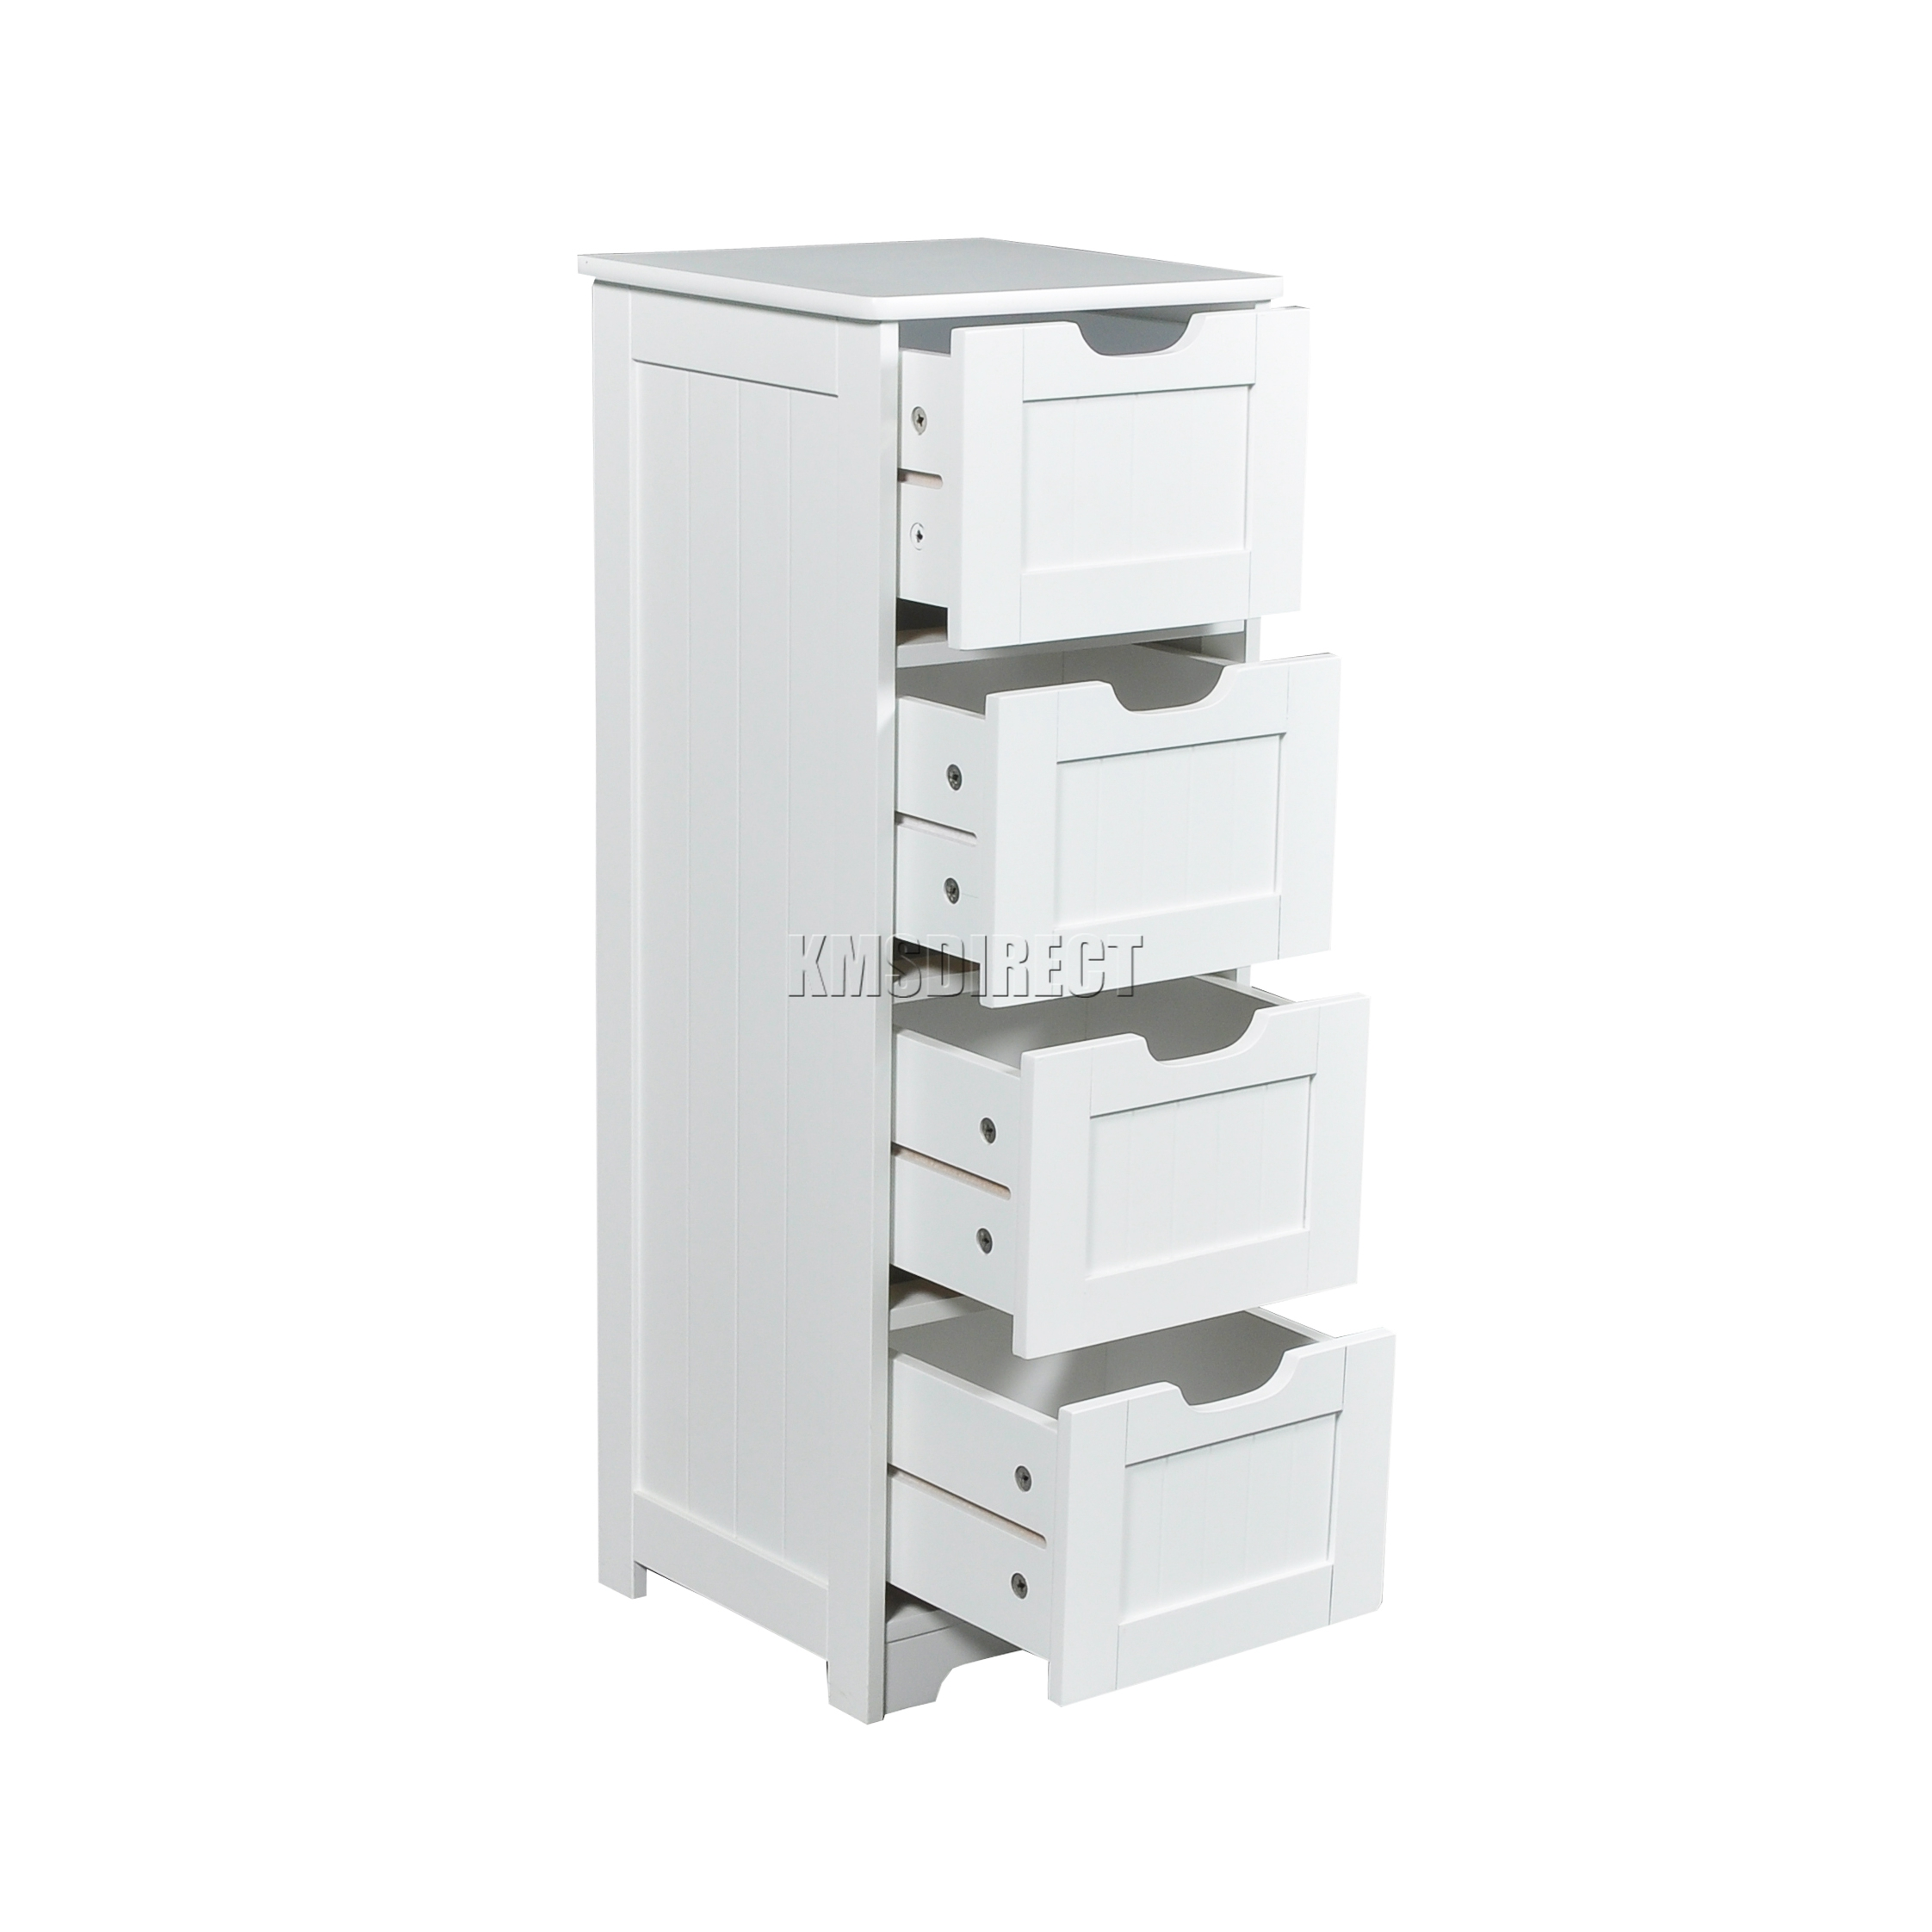 Foxhunter white wooden 4 drawer bathroom storage cupboard for White bathroom chest